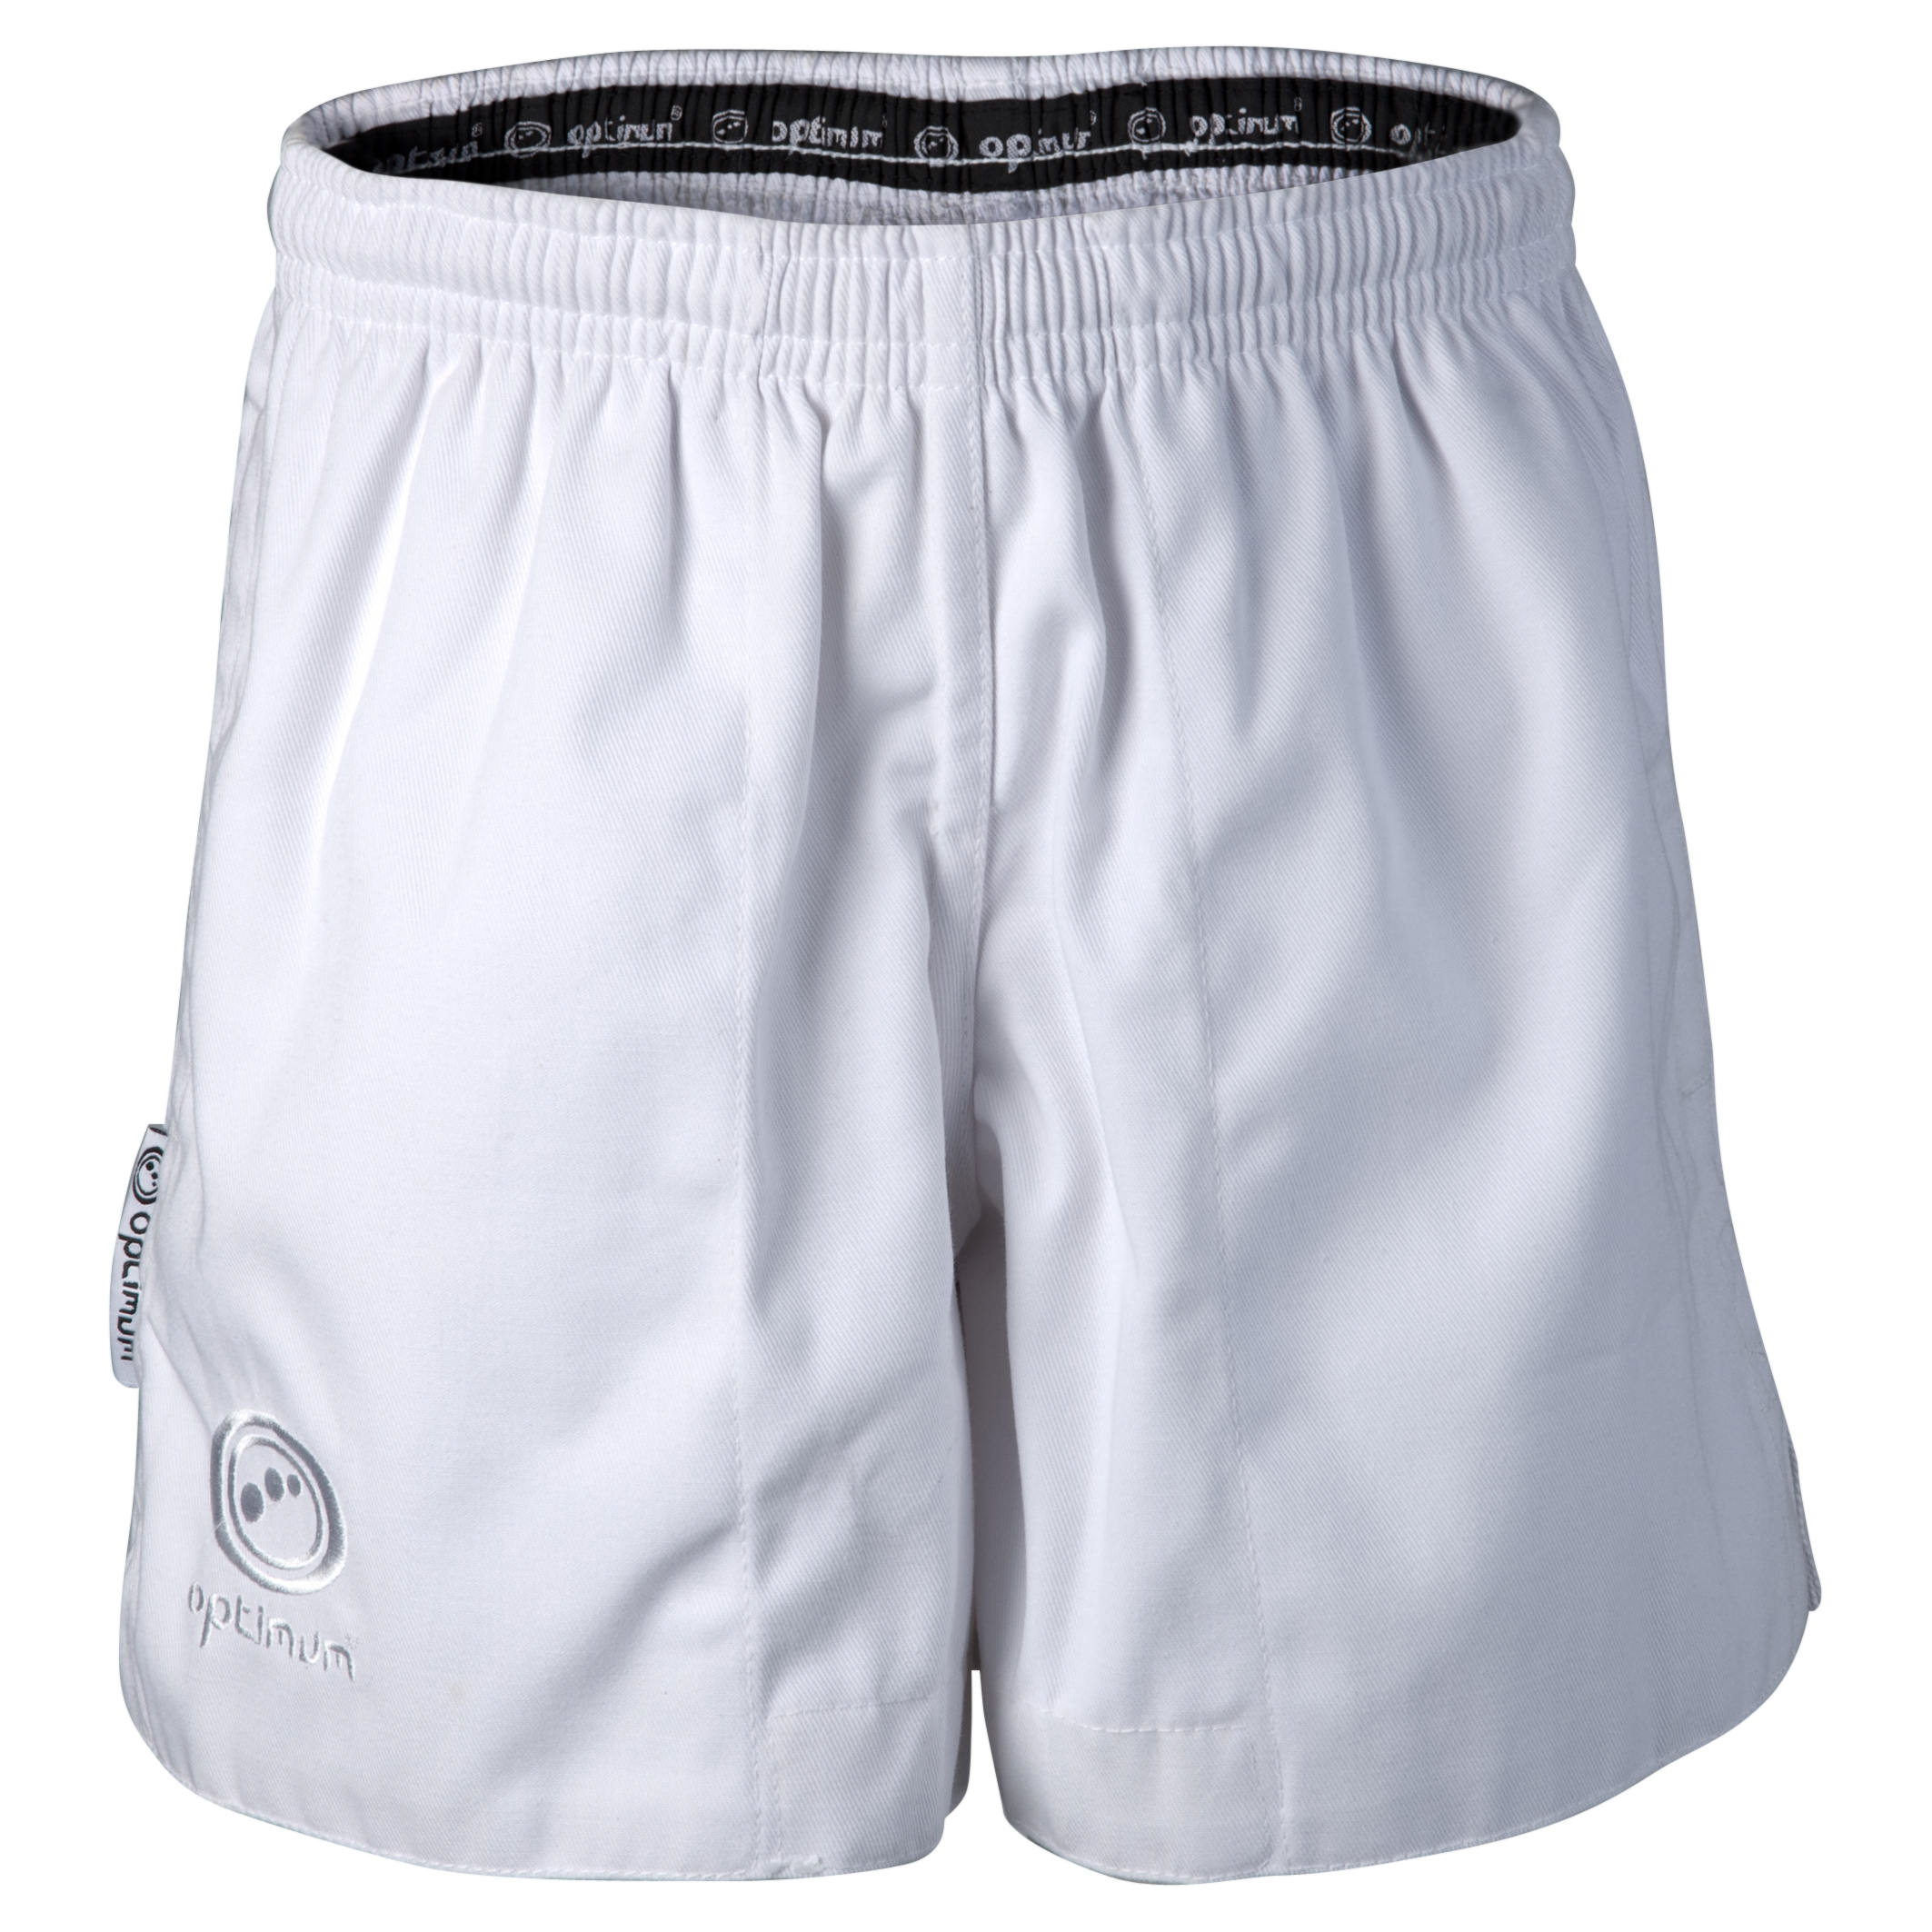 Optimum Auckland Rugby Short - White